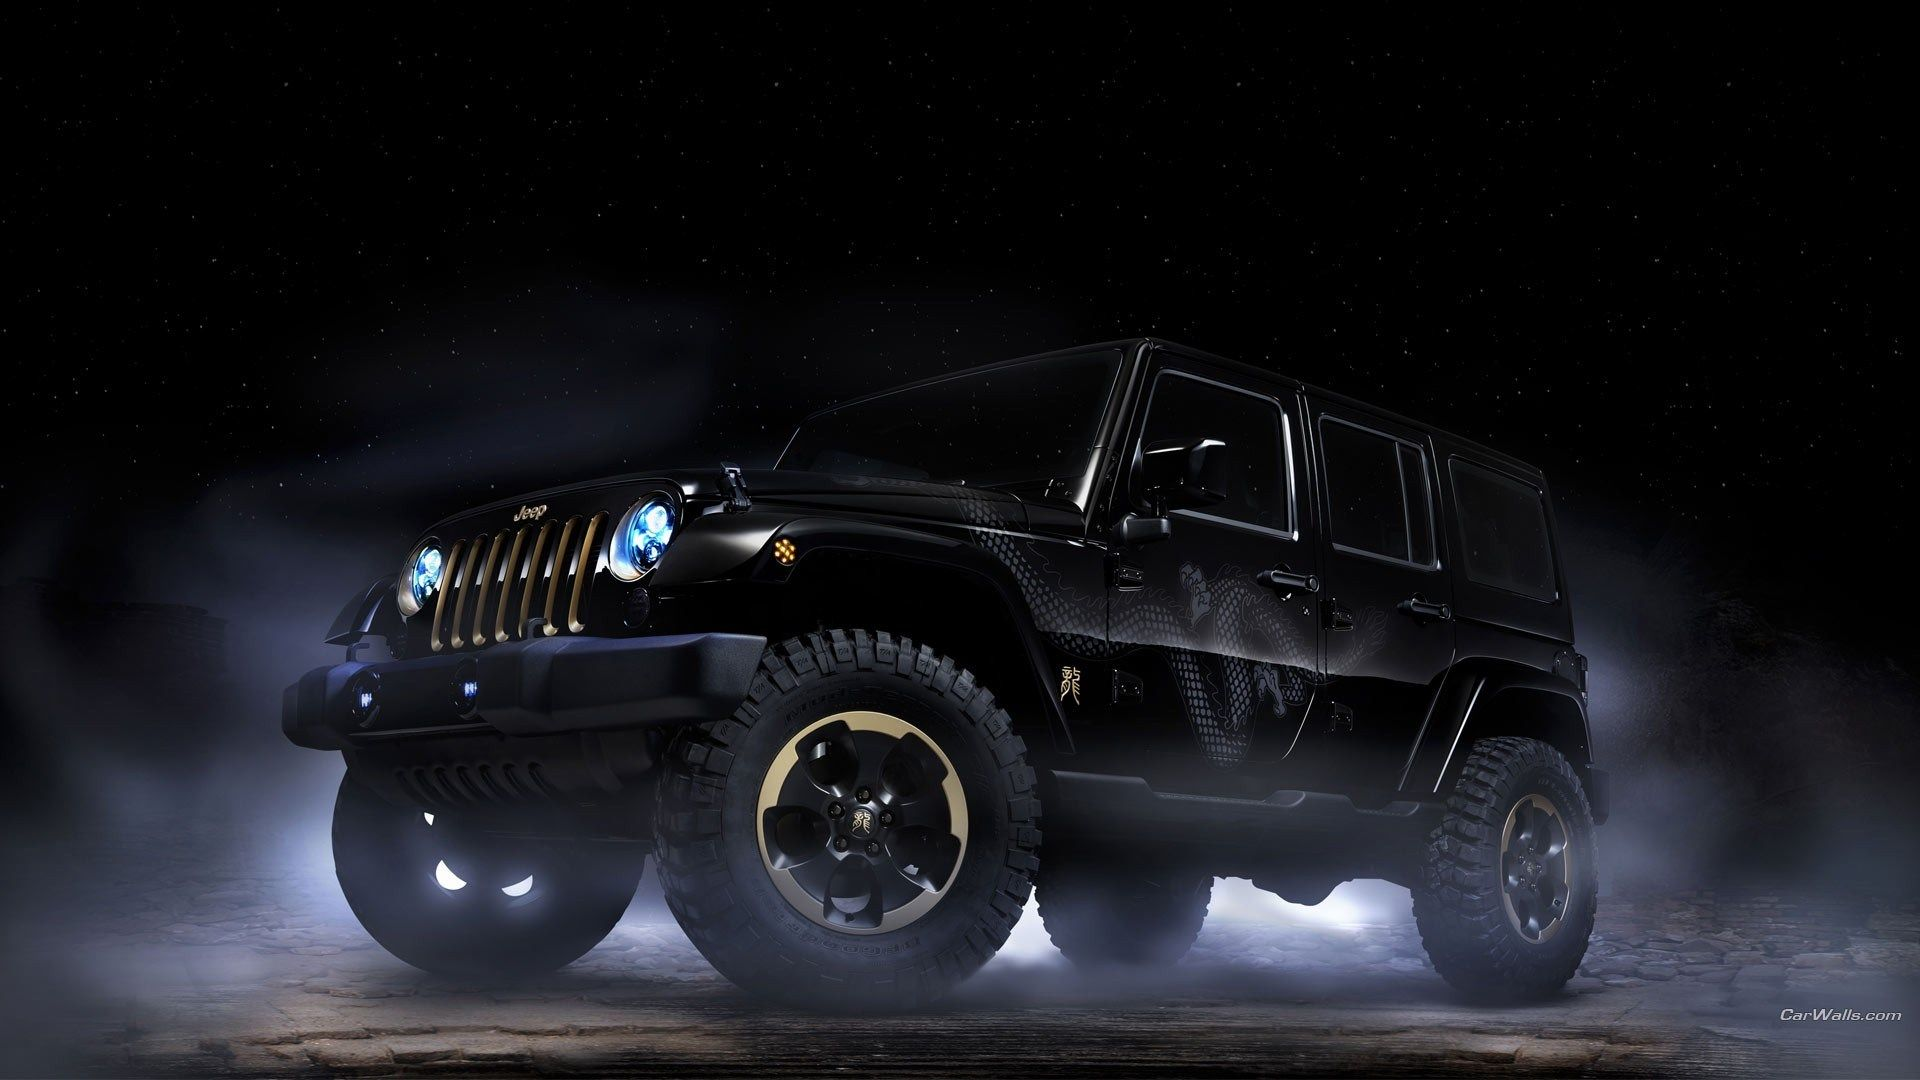 Jeep Wrangler Wallpaper Pack 1080p Hd Jeep Wrangler Category